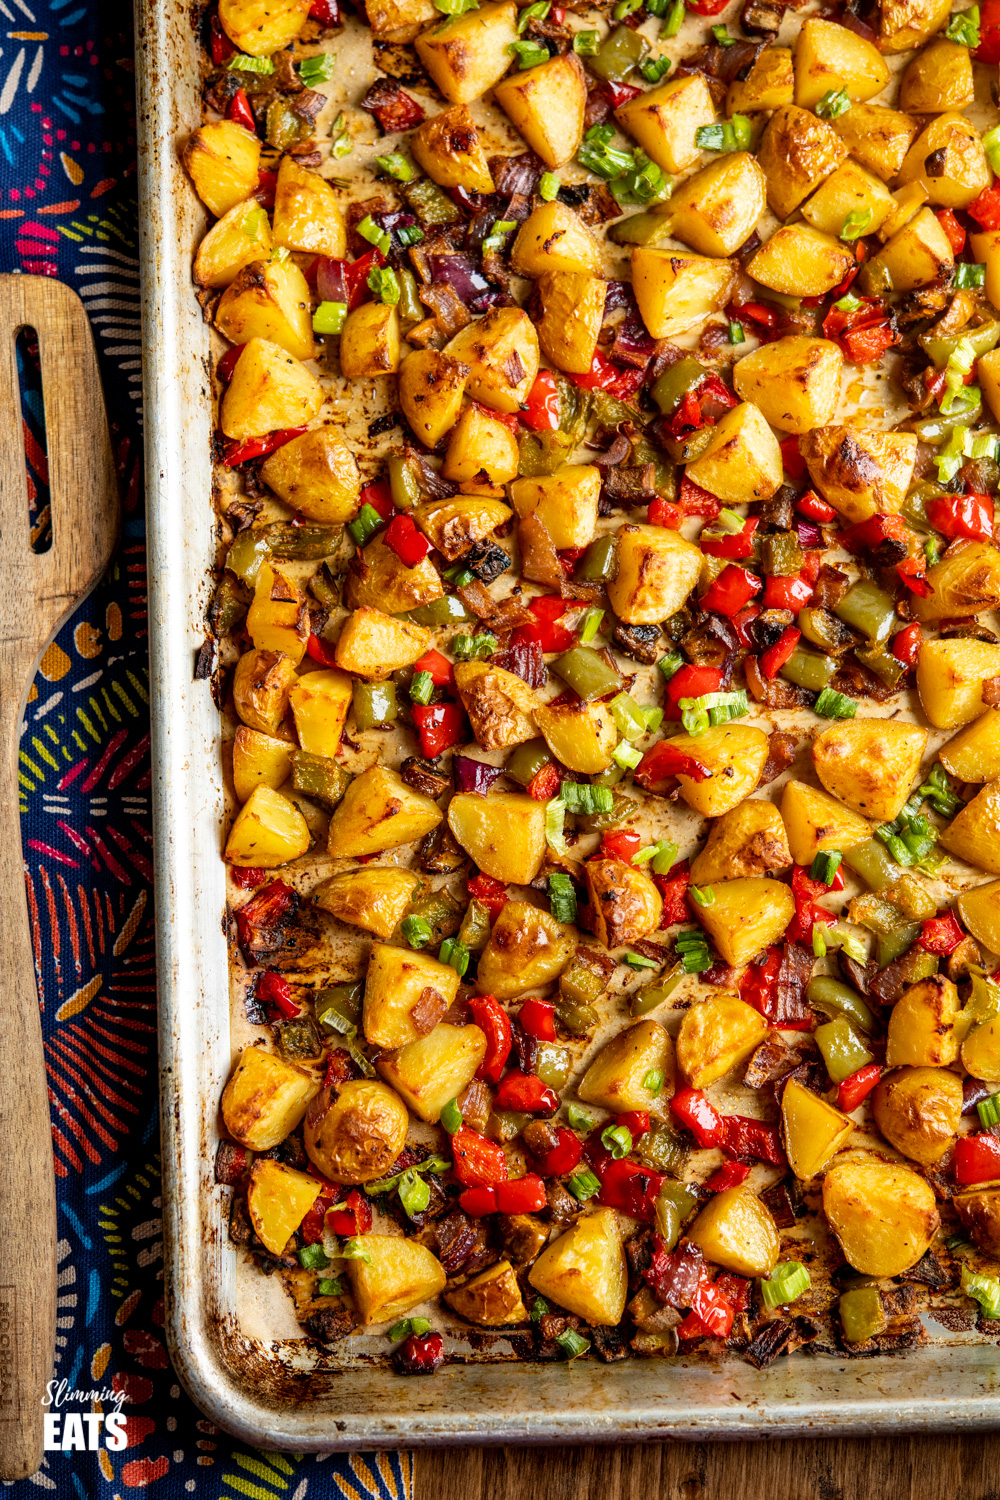 tray bake of breakfast potatoes with patterned towel on board